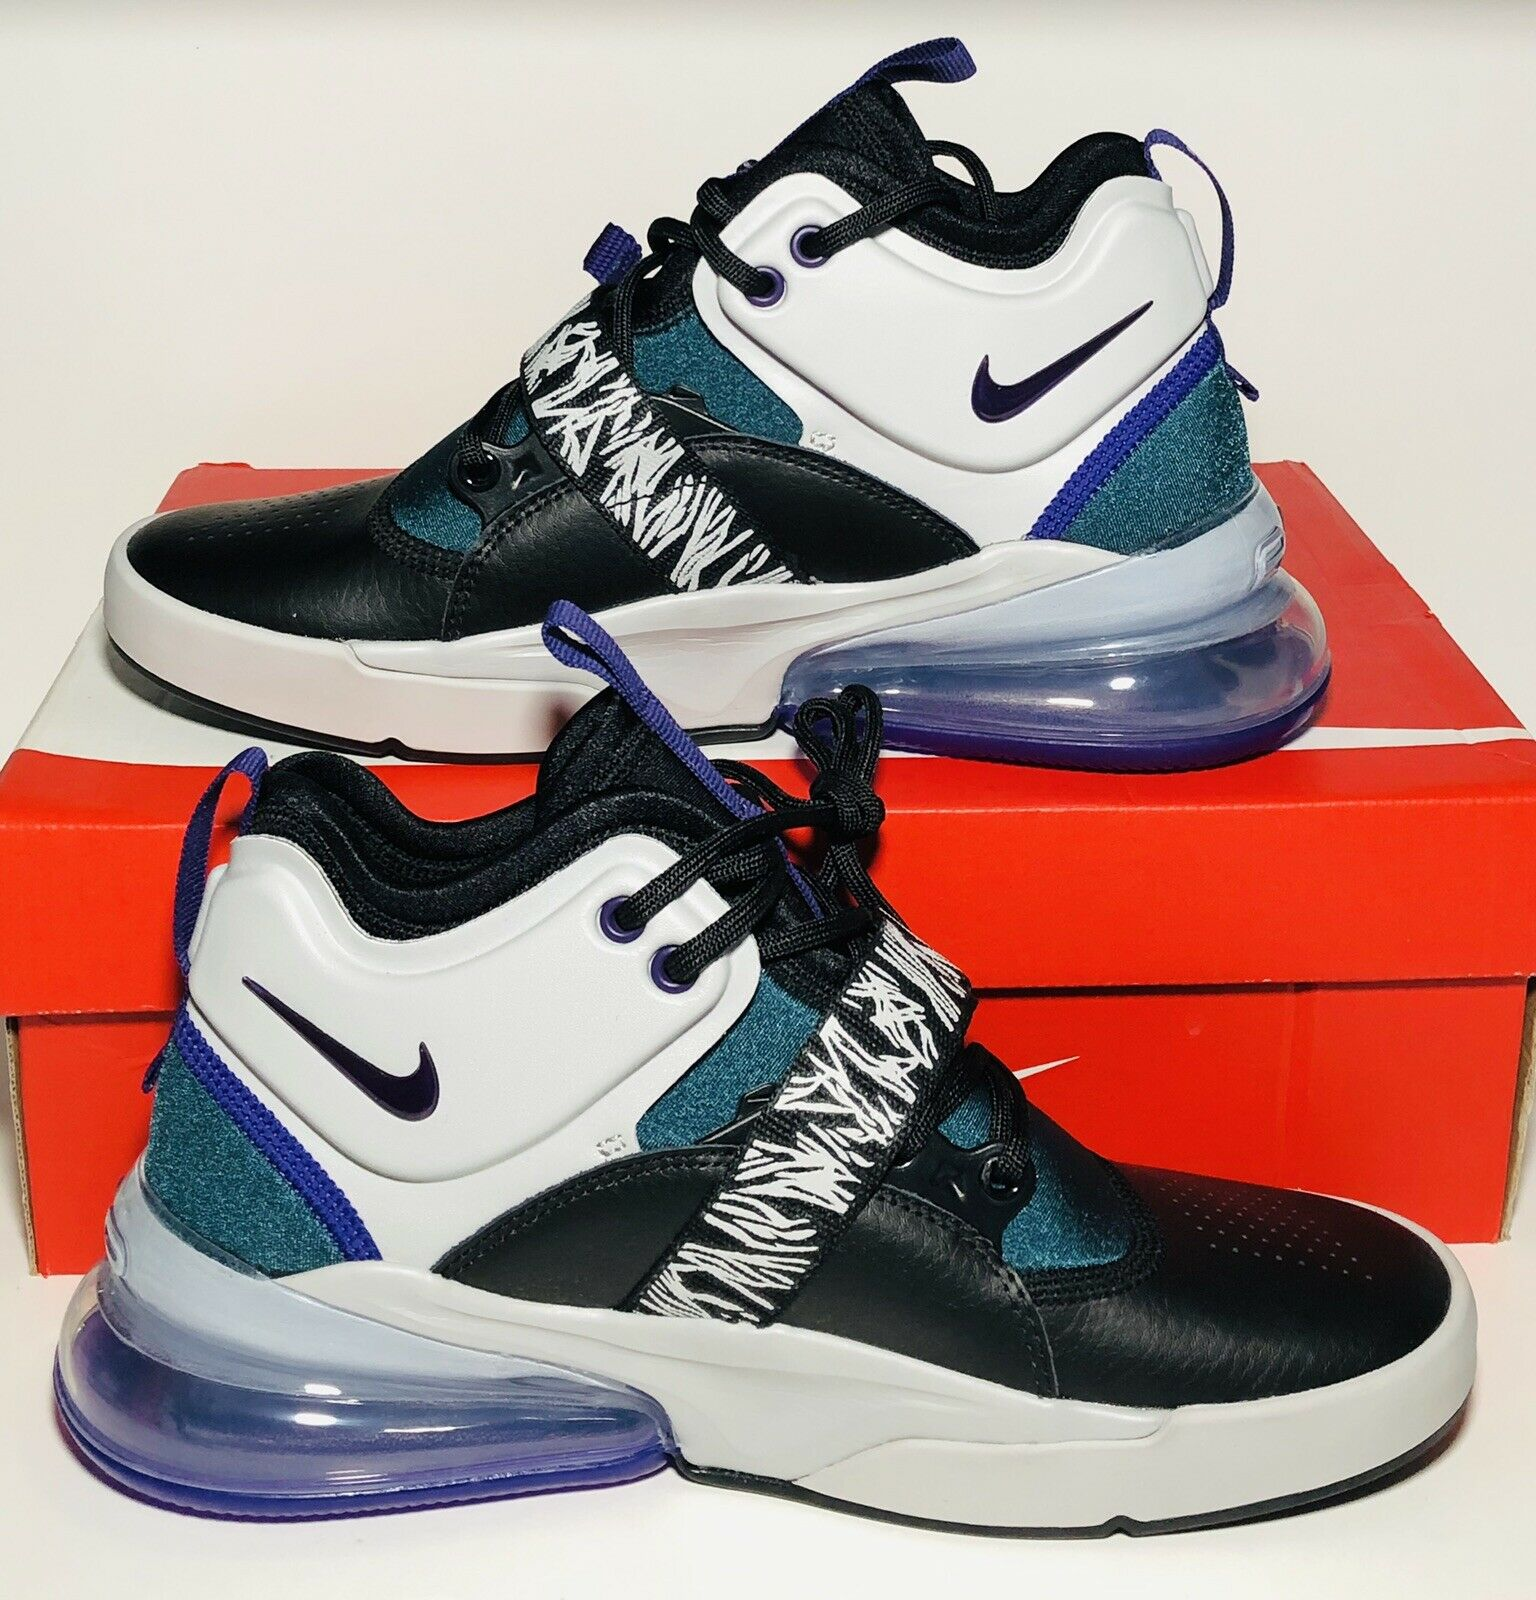 New Nike Air Force  270 GS Carnivore nero Court viola Zebra Dimensione 6Y Donne 65533;s 7.5  outlet online